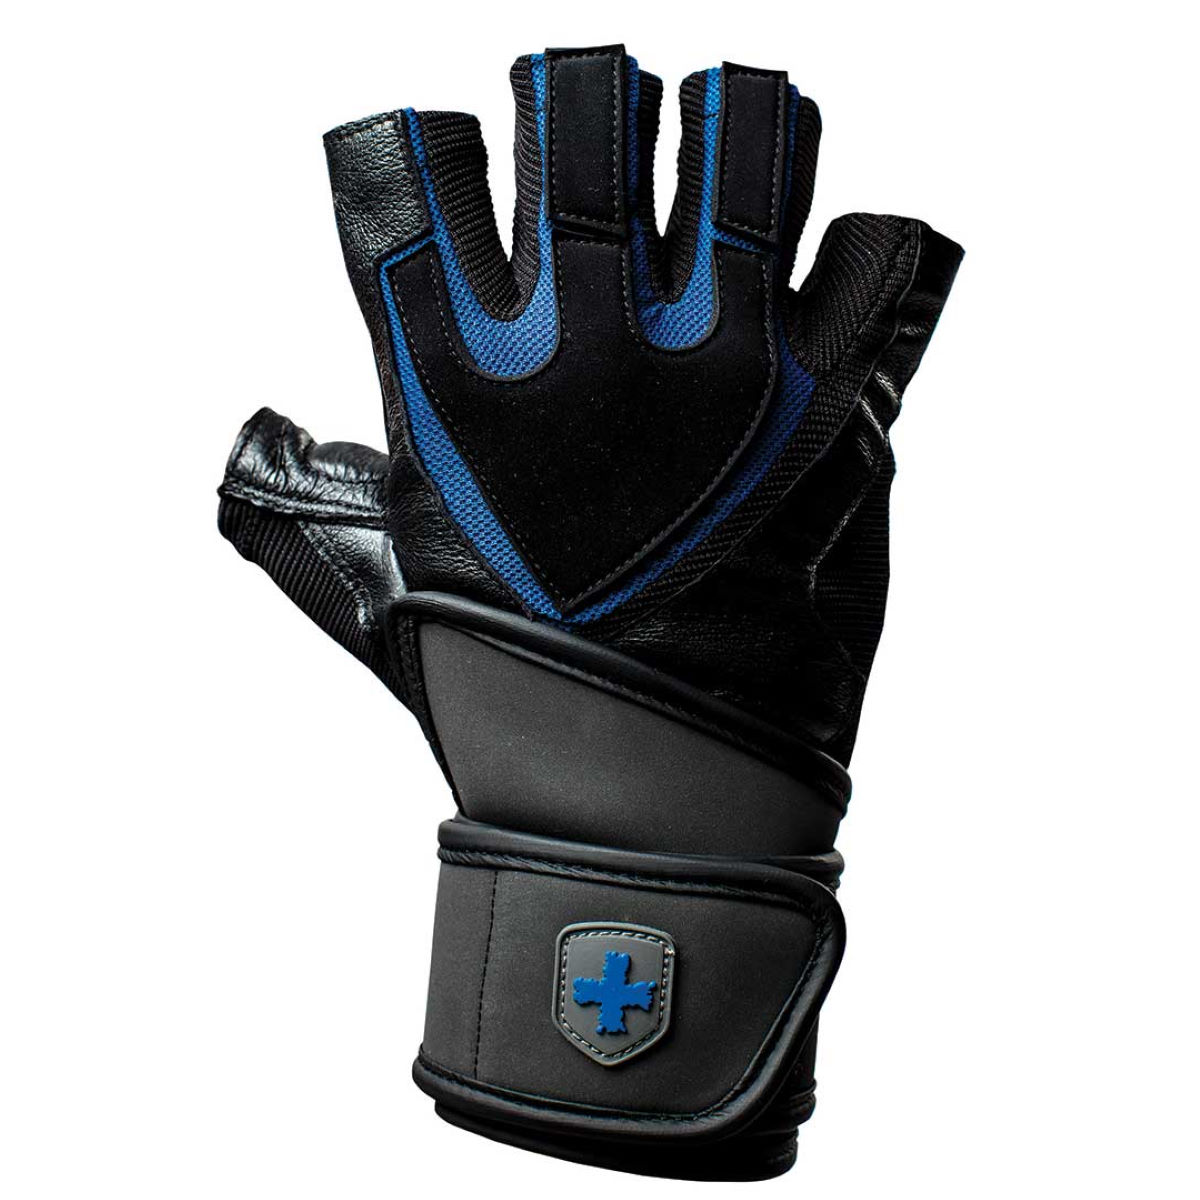 Gants courts Harbinger Training Grip® Wristwrap - Small Noir/Bleu